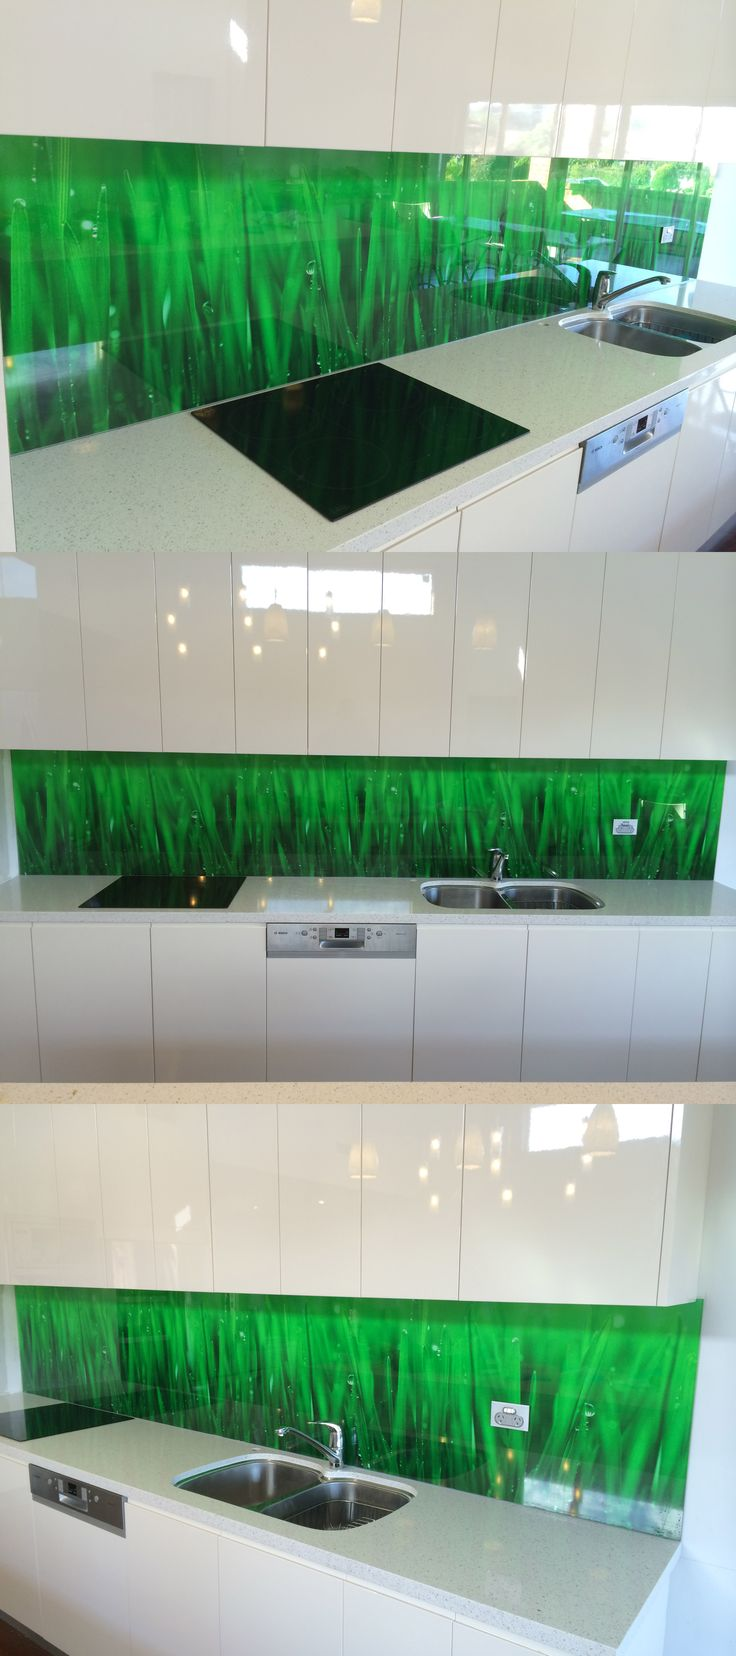 From designs and patterns to landscapes, we can use any image to create amazing glass splashbacks. This piece is a different take on a landscape print - produced to stunning effect!